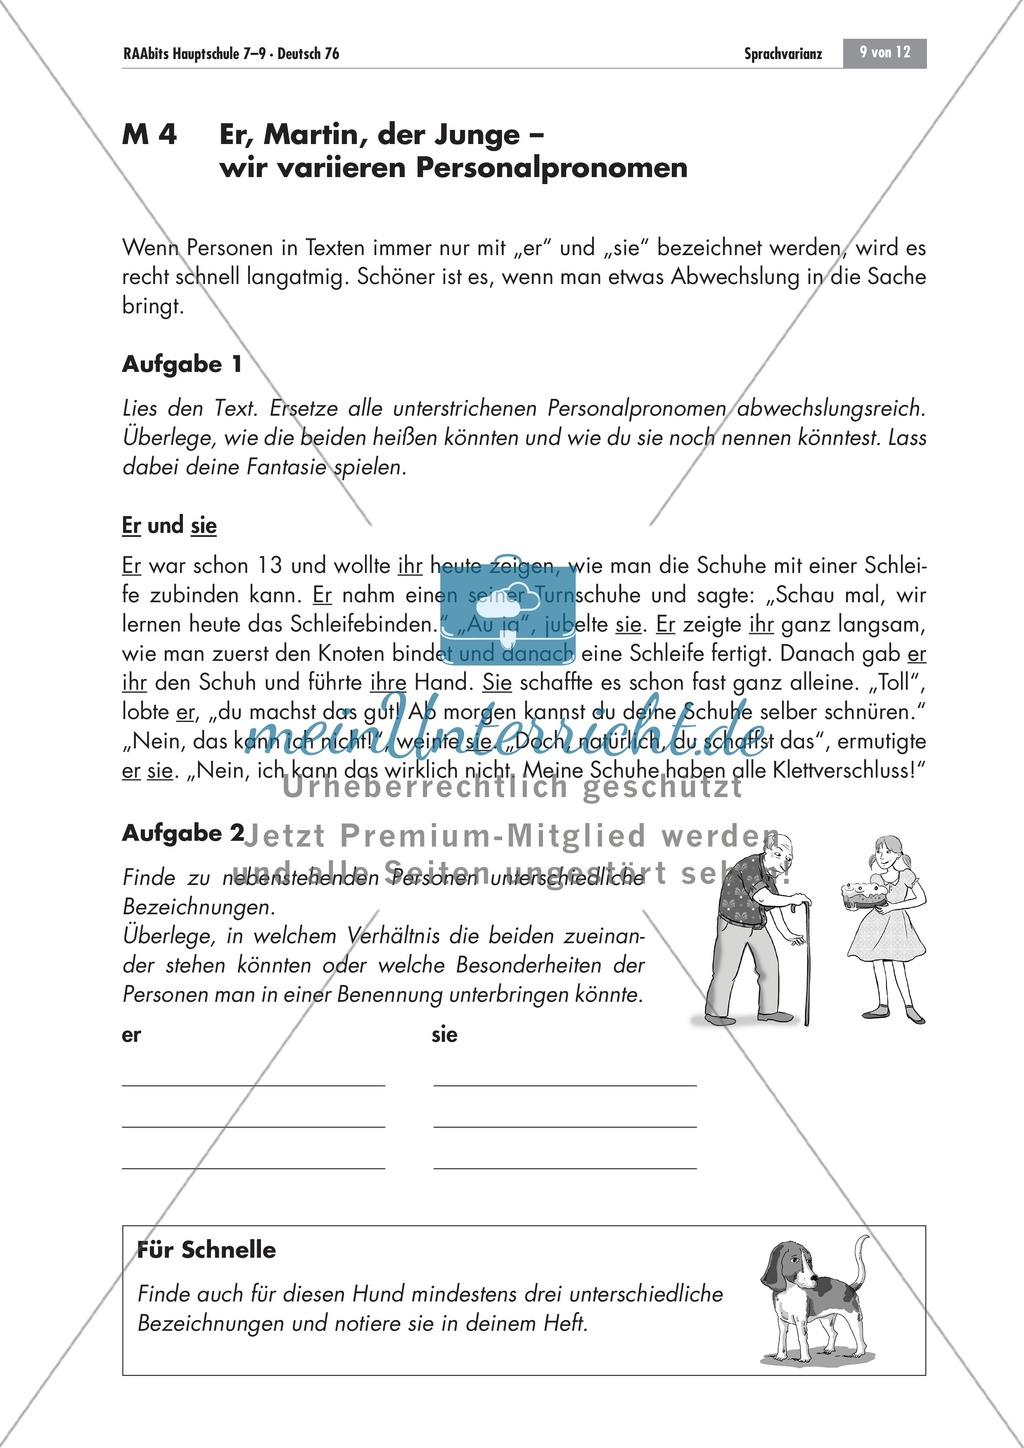 Personalpronomen variieren Preview 0